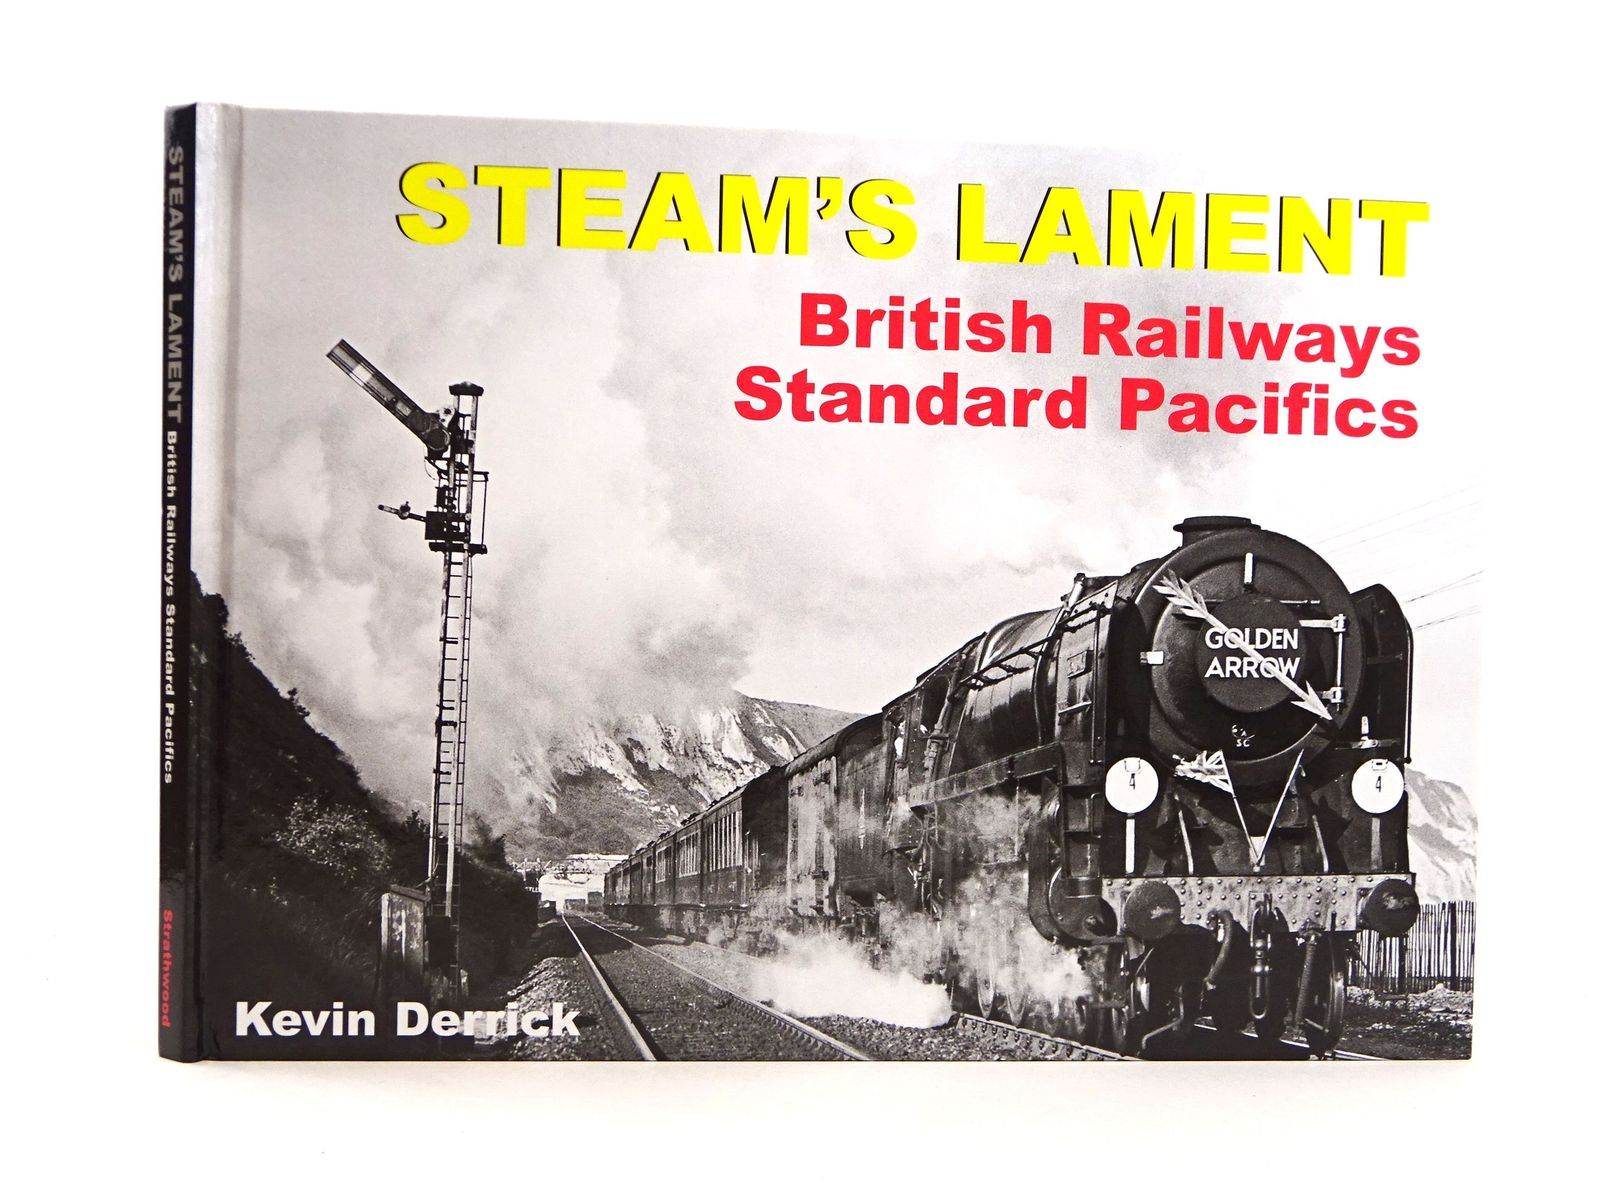 Photo of STEAM'S LAMENT: BRITISH RAILWAYS STANDARD PACIFICS written by Derrick, Kevin published by Strathwood Ltd (STOCK CODE: 1818155)  for sale by Stella & Rose's Books